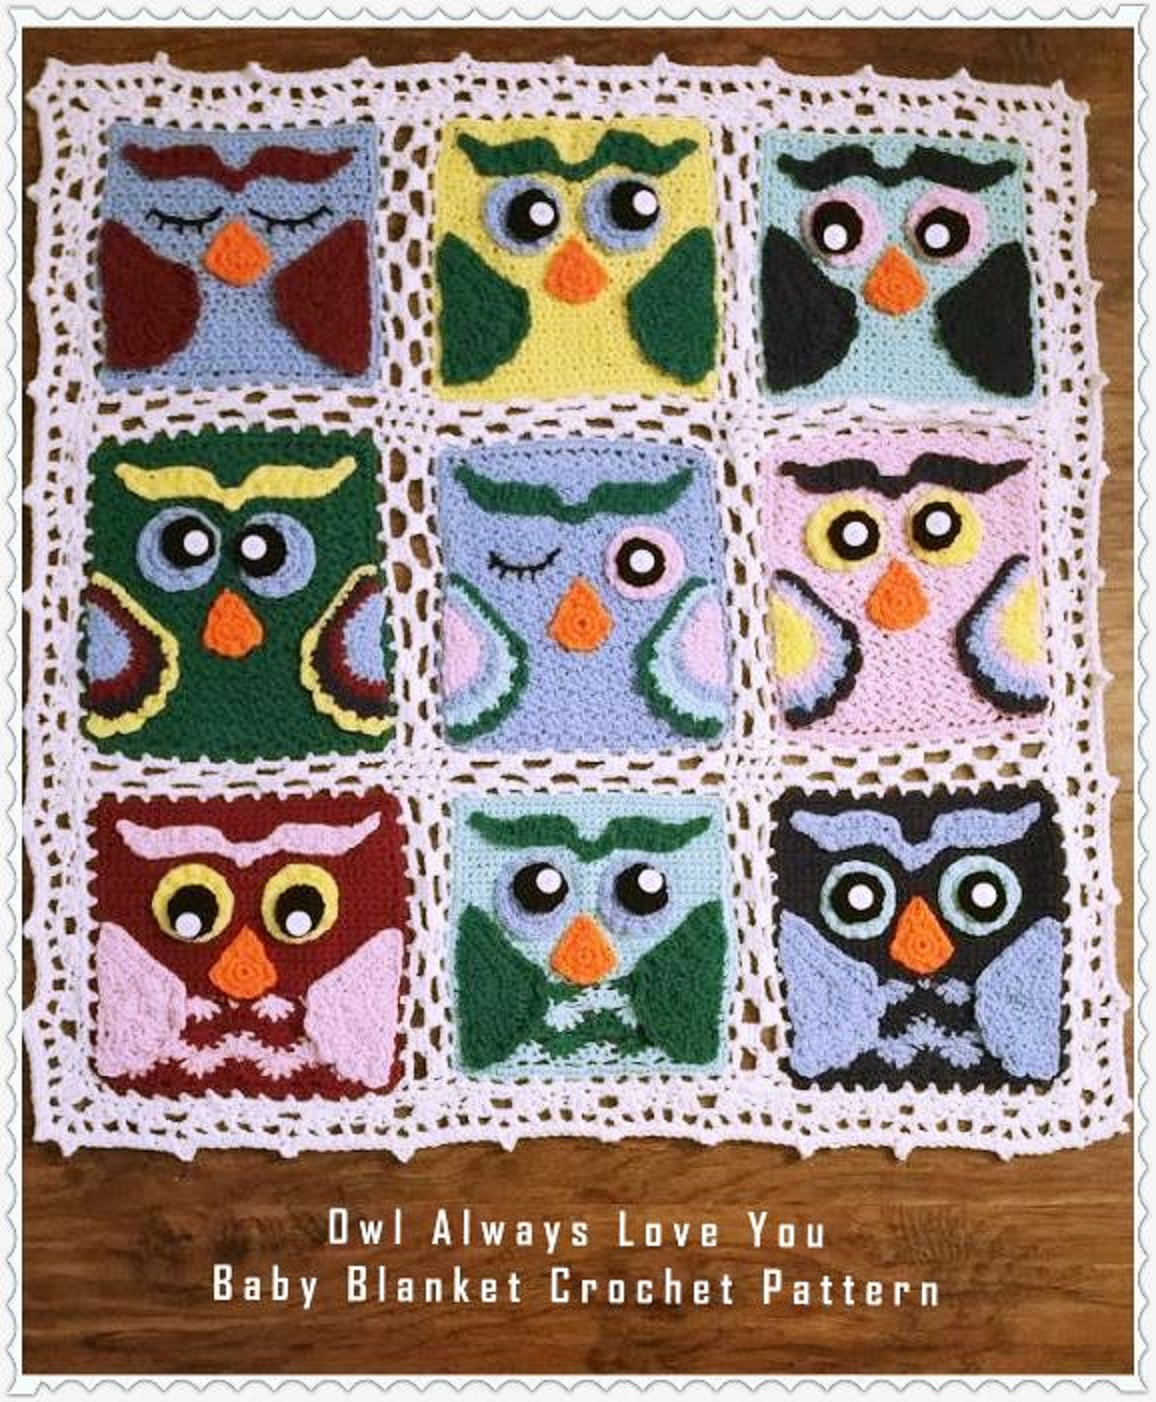 Owl Always Love You Baby Afghan Crochet Pattern